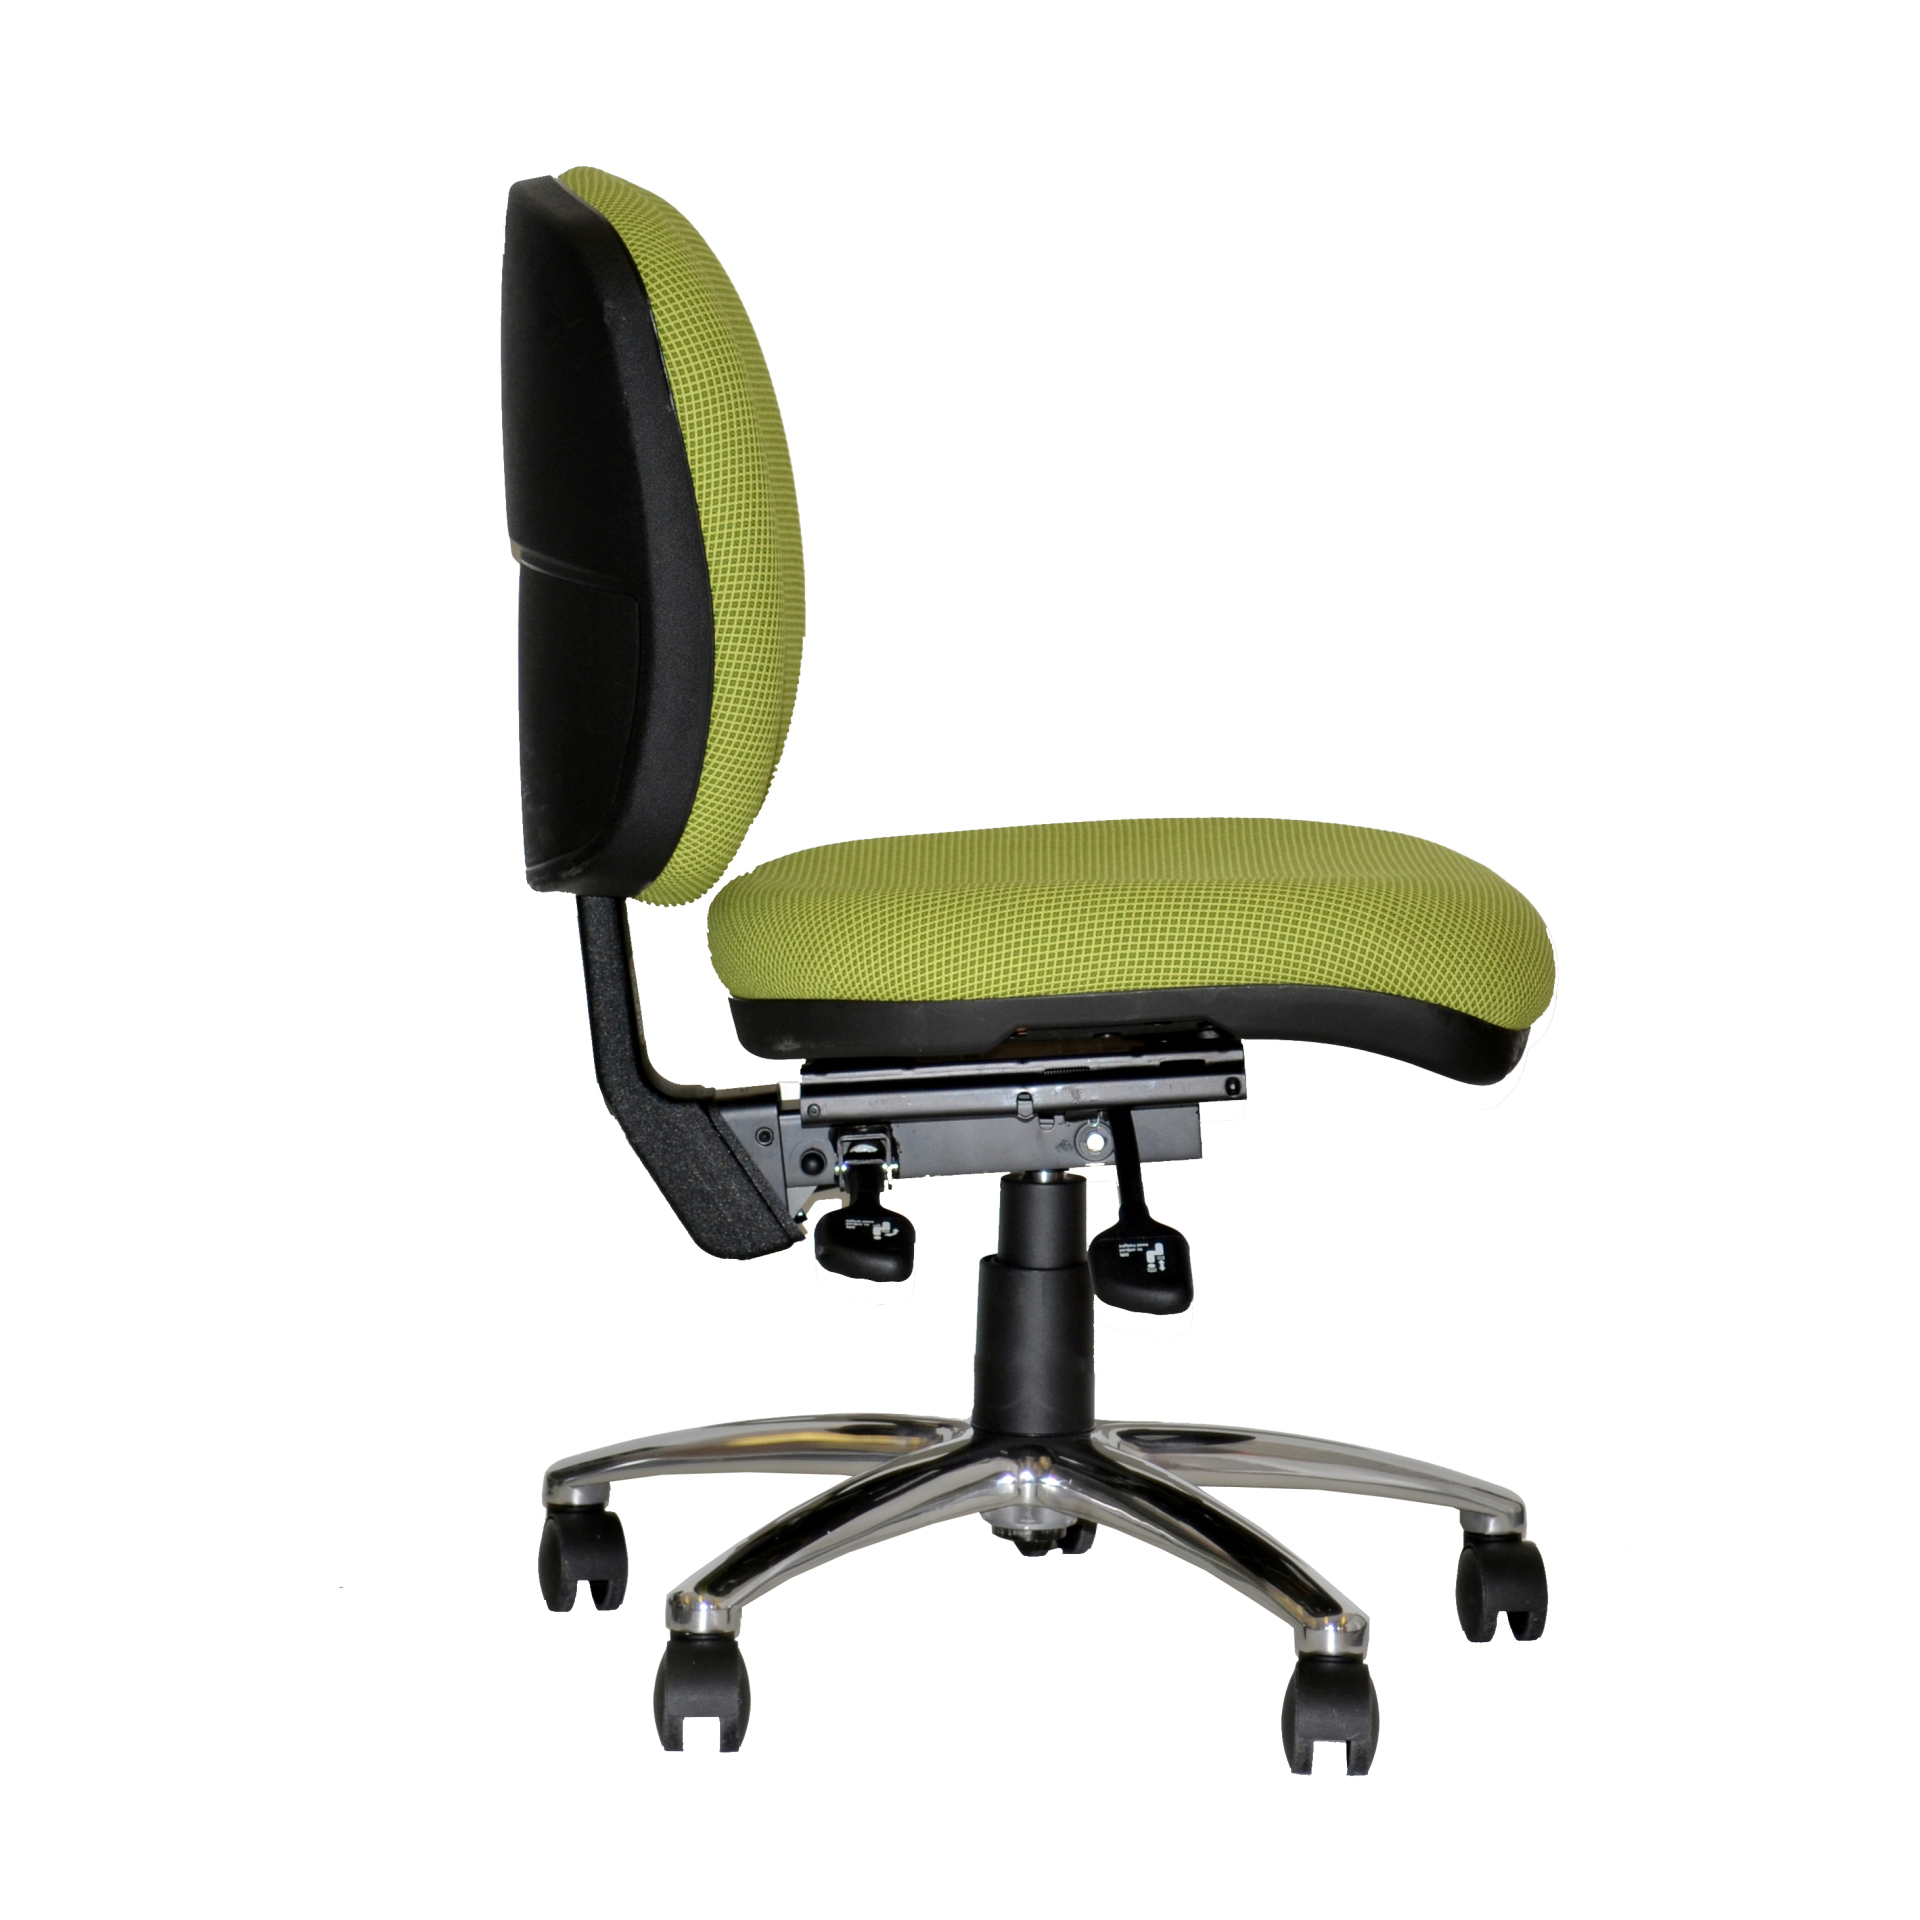 Direct Ergonomics | Sydney Office Furniture | Ergonomic Furniture | Ergonomic Seating | Executive and Task Seating | Ergonomic Chair | Ezone 510